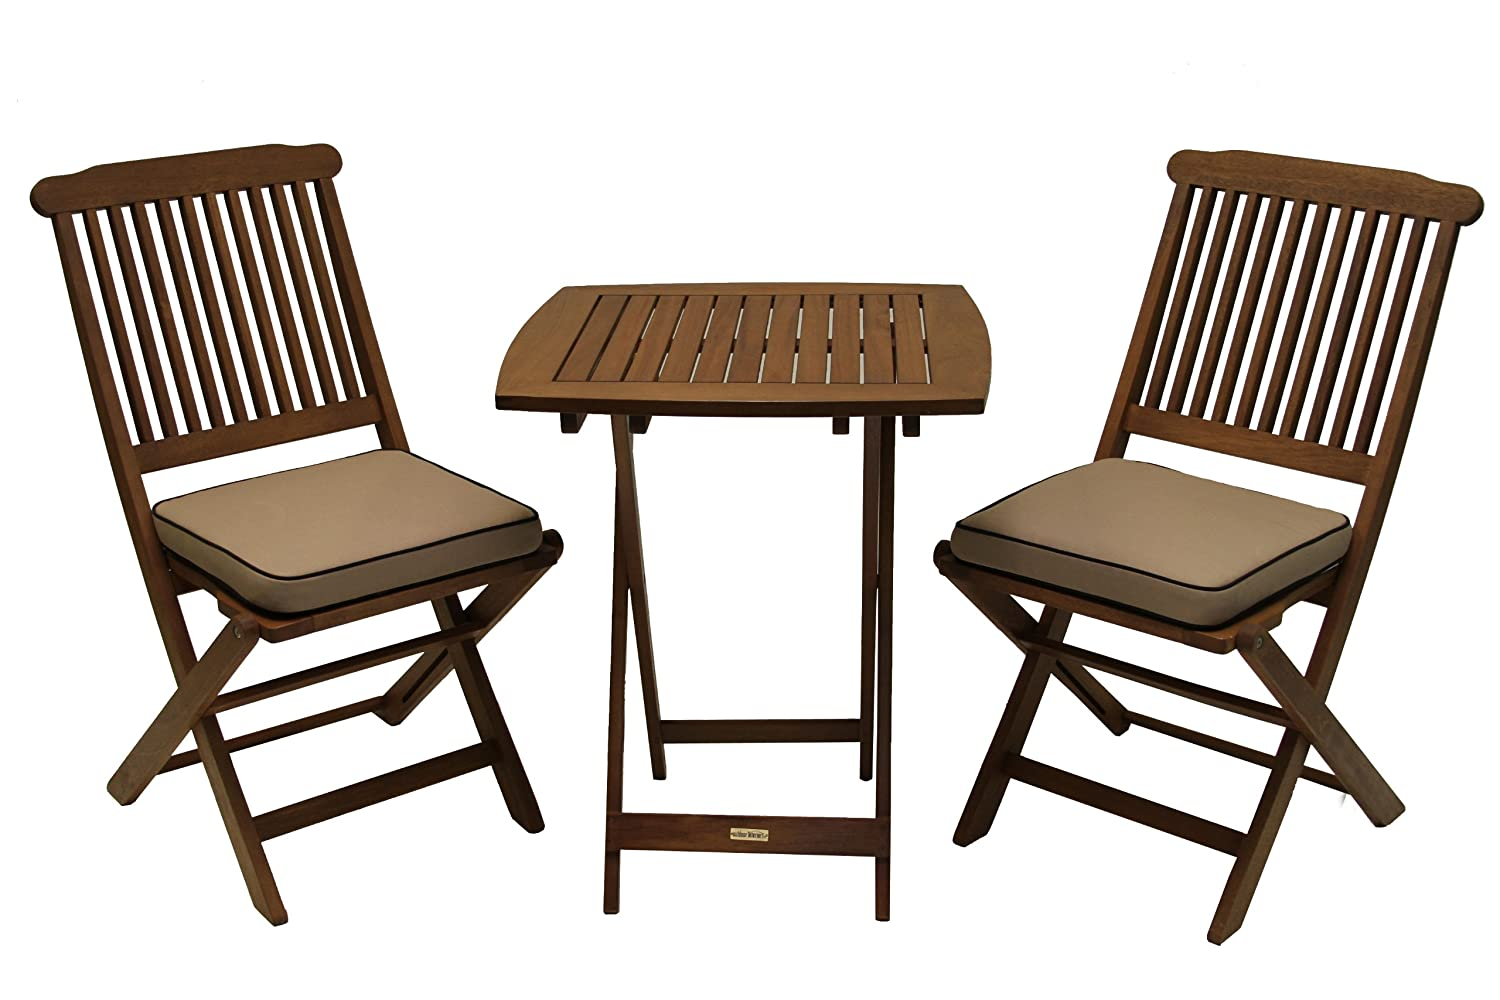 Amazon.com : Outdoor Interiors Eucalyptus 3 Piece Square Bistro Outdoor  Furniture Set   Includes Cushions : Outdoor And Patio Furniture Sets :  Garden U0026 ... Part 89